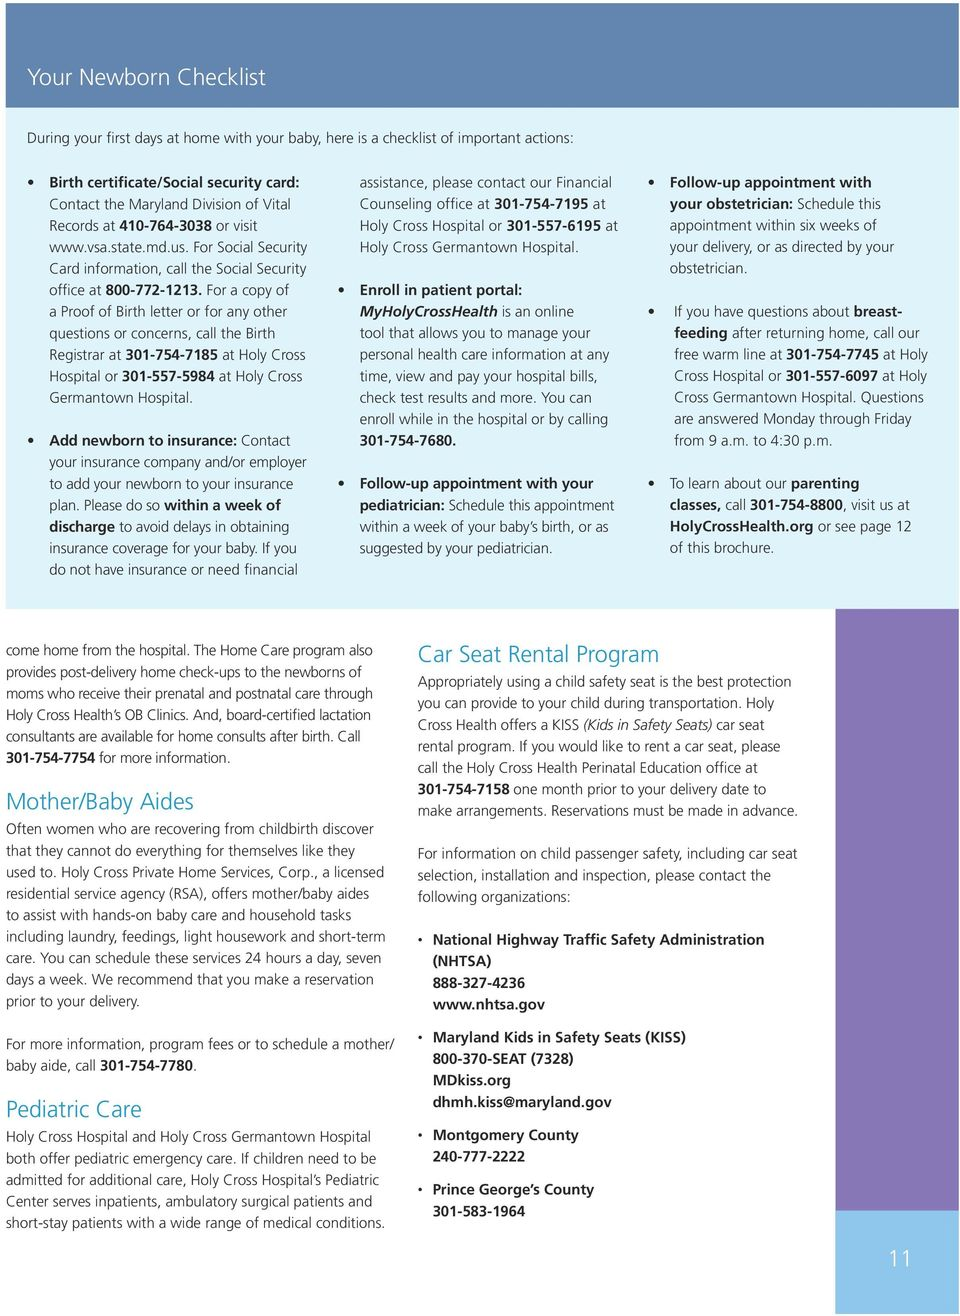 Maternity Services A Guide To Our Comprehensive Care For You And